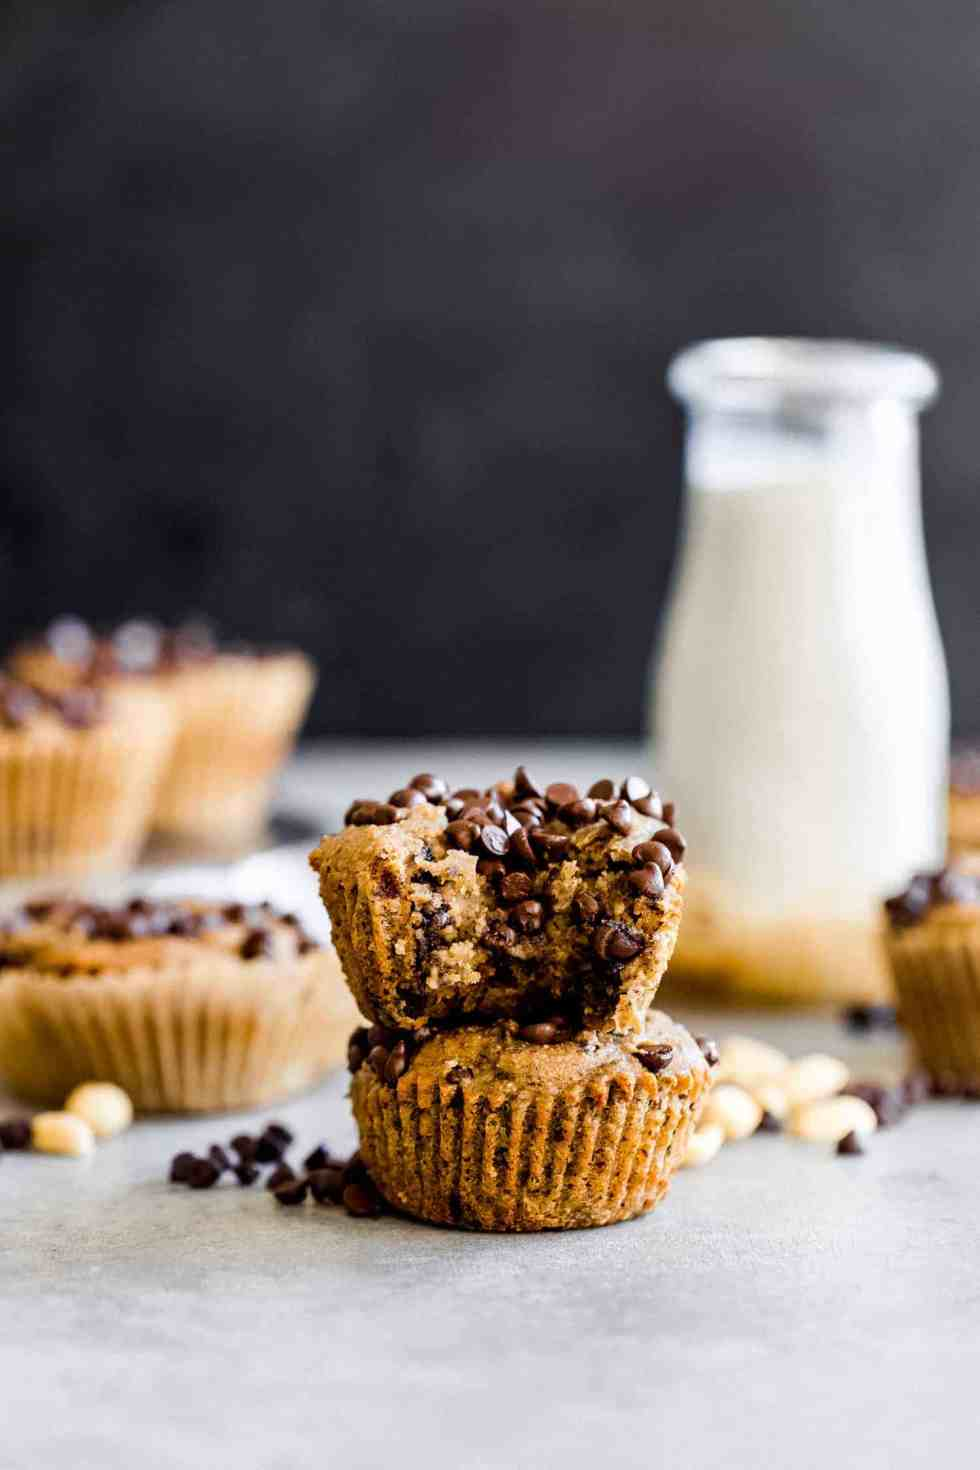 peanut butter banana muffins with dark chocolate chips stacked with a milk jug in the background